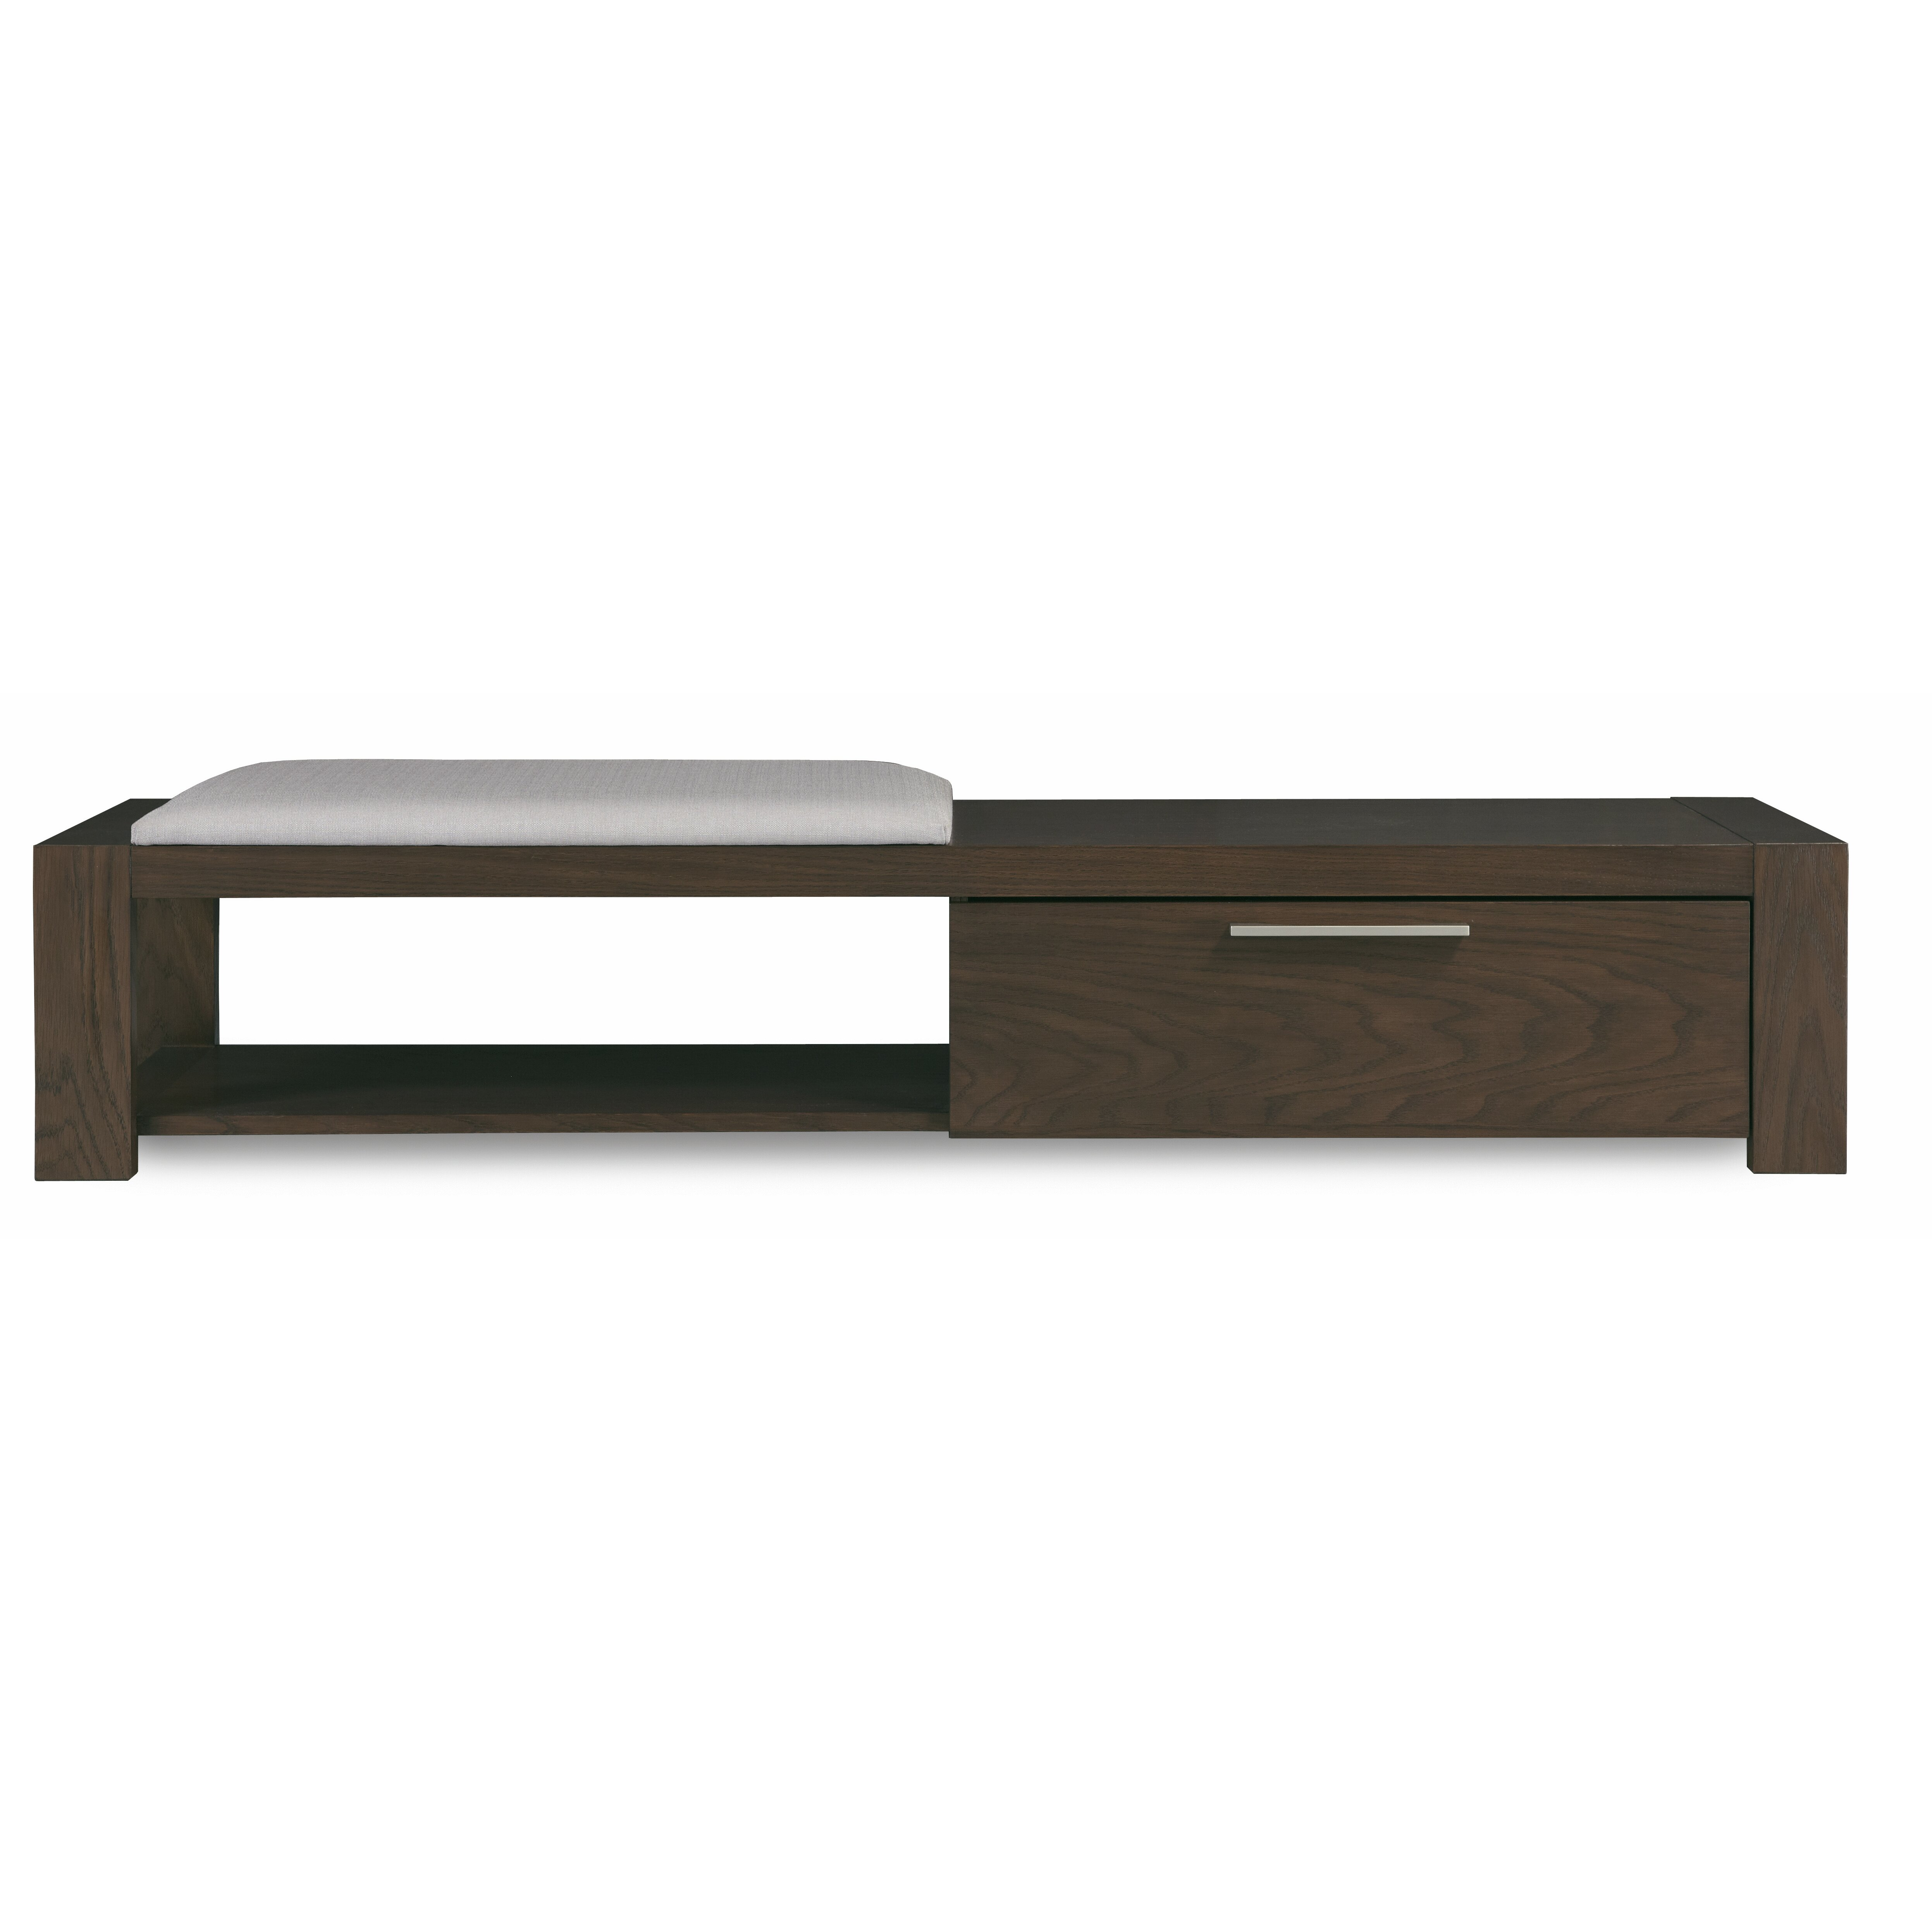 Marvelous photograph of Casana Furniture Company Hudson Wood Storage Bedroom Bench Wayfair with #57493D color and 4987x4987 pixels